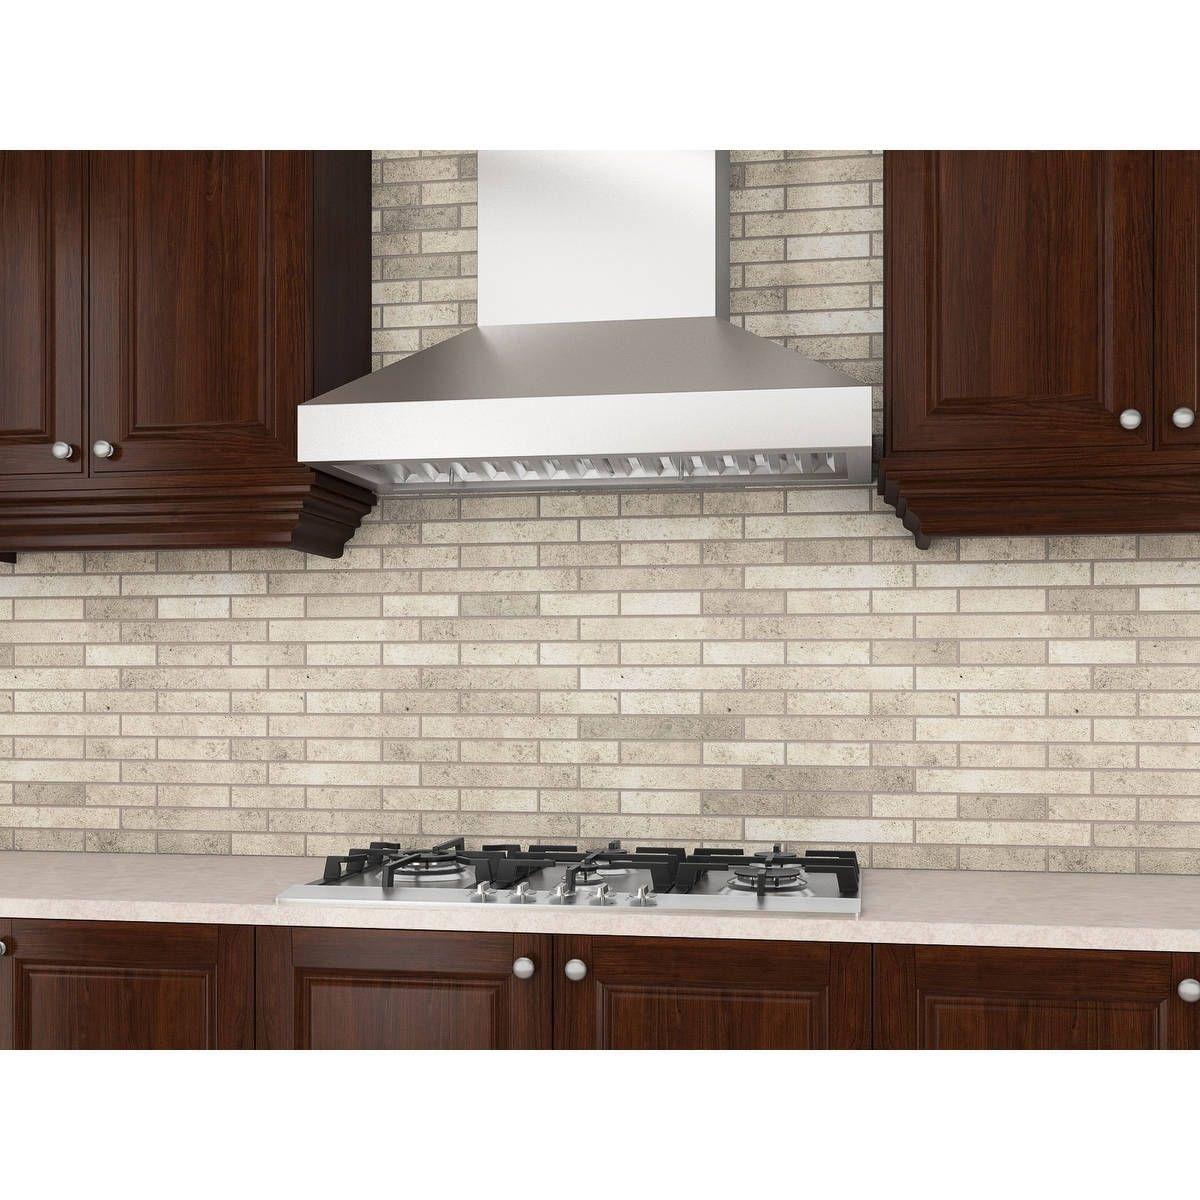 Best Of Ancona Under Cabinet Range Hood